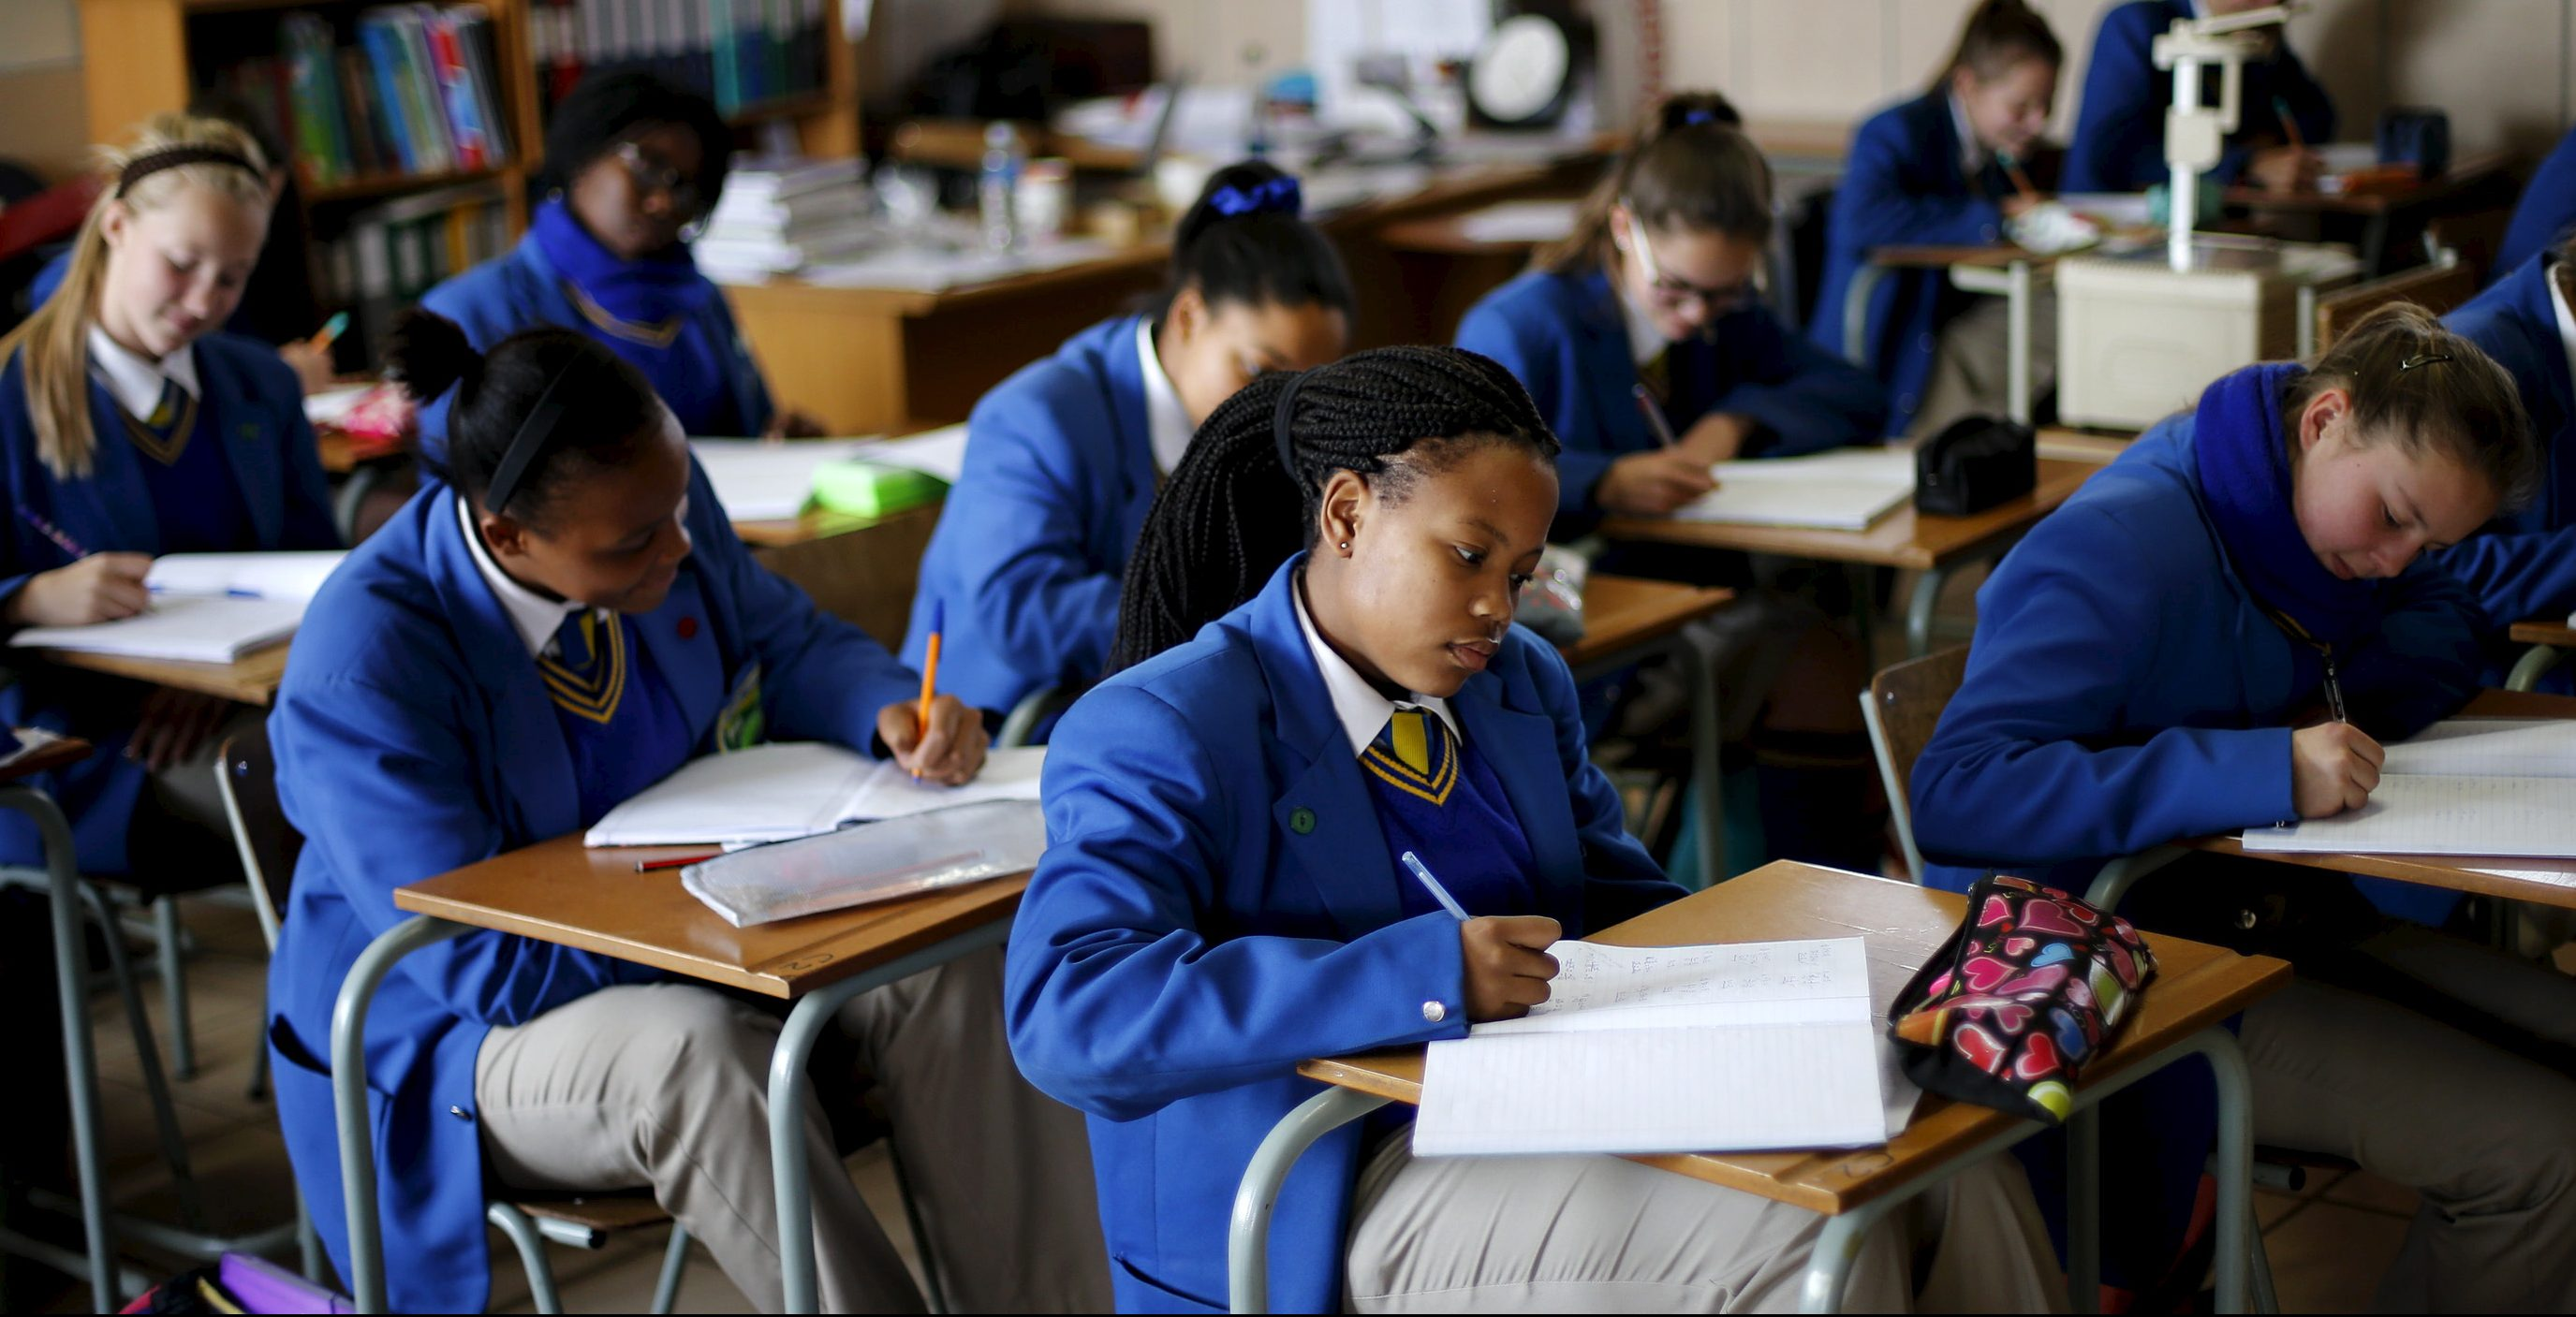 """School children attend class at Waterstone College, a private school managed by Curro in the south of Johannesburg July 22, 2015. South African private education group Advtech rejected a takeover offer from its bigger rival Curro Holdings, saying on Tuesday the proposal contained """"unacceptable pre-conditions"""". Advtech's shares fell more than 7 percent shortly after the announcement that it had rejected Curro's bid, but pared losses to close down 2.93 percent at 11.60 rand. The shares are up about 30 percent so far this year. Curro's stock shed 0.83 percent to close on 11.70 rand."""